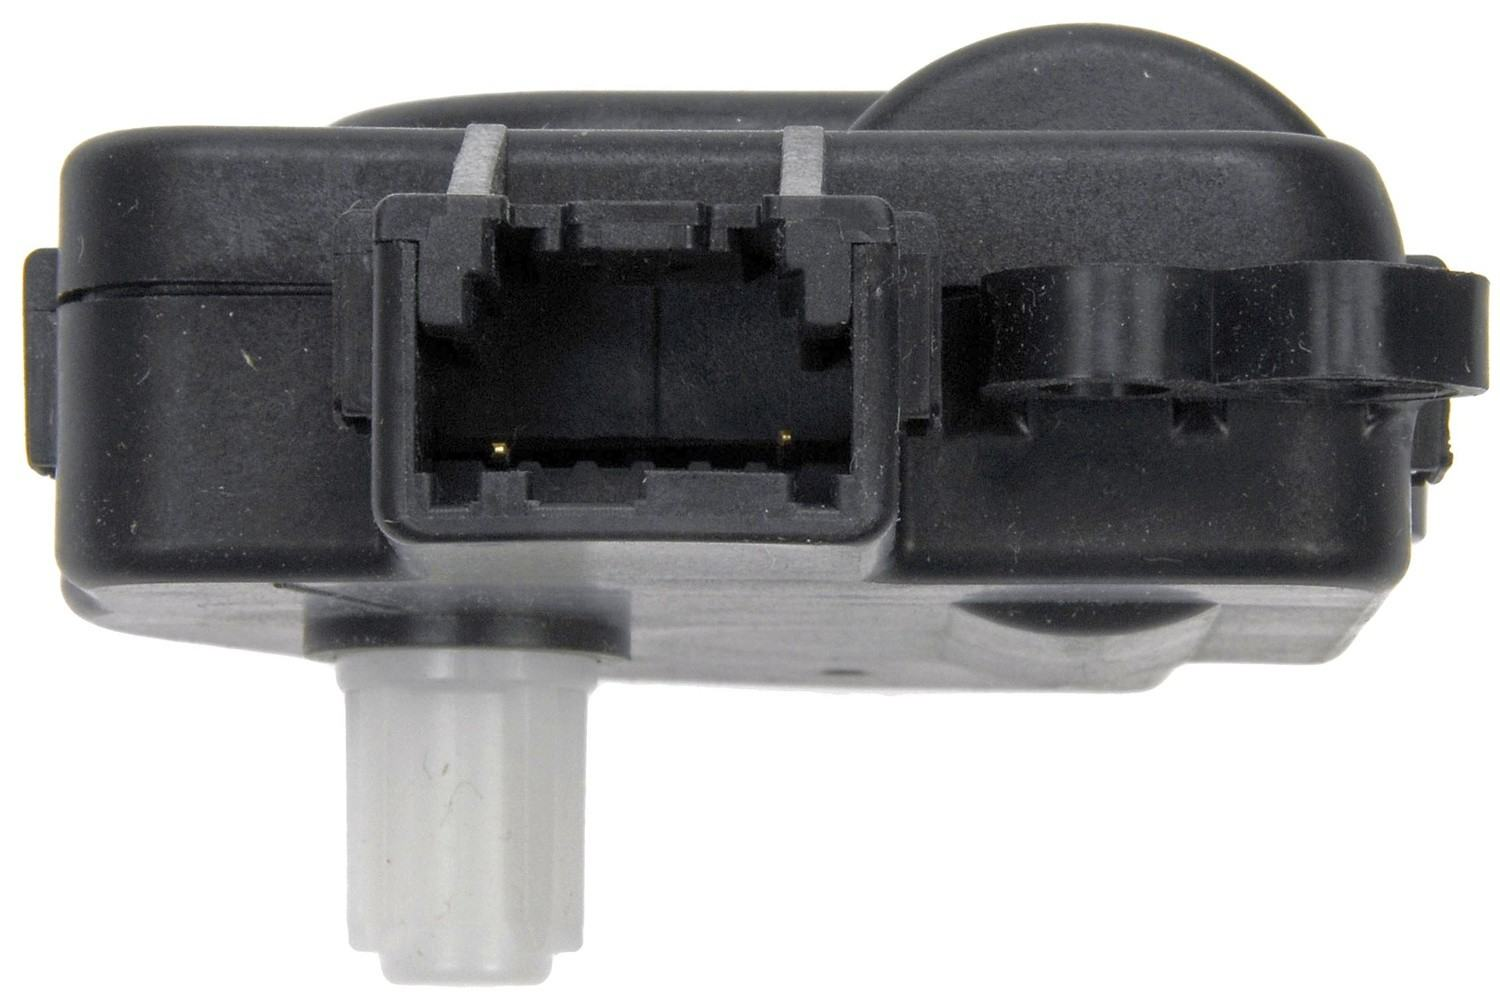 DORMAN OE SOLUTIONS - HVAC Heater Blend Door Actuator - DRE 604-024